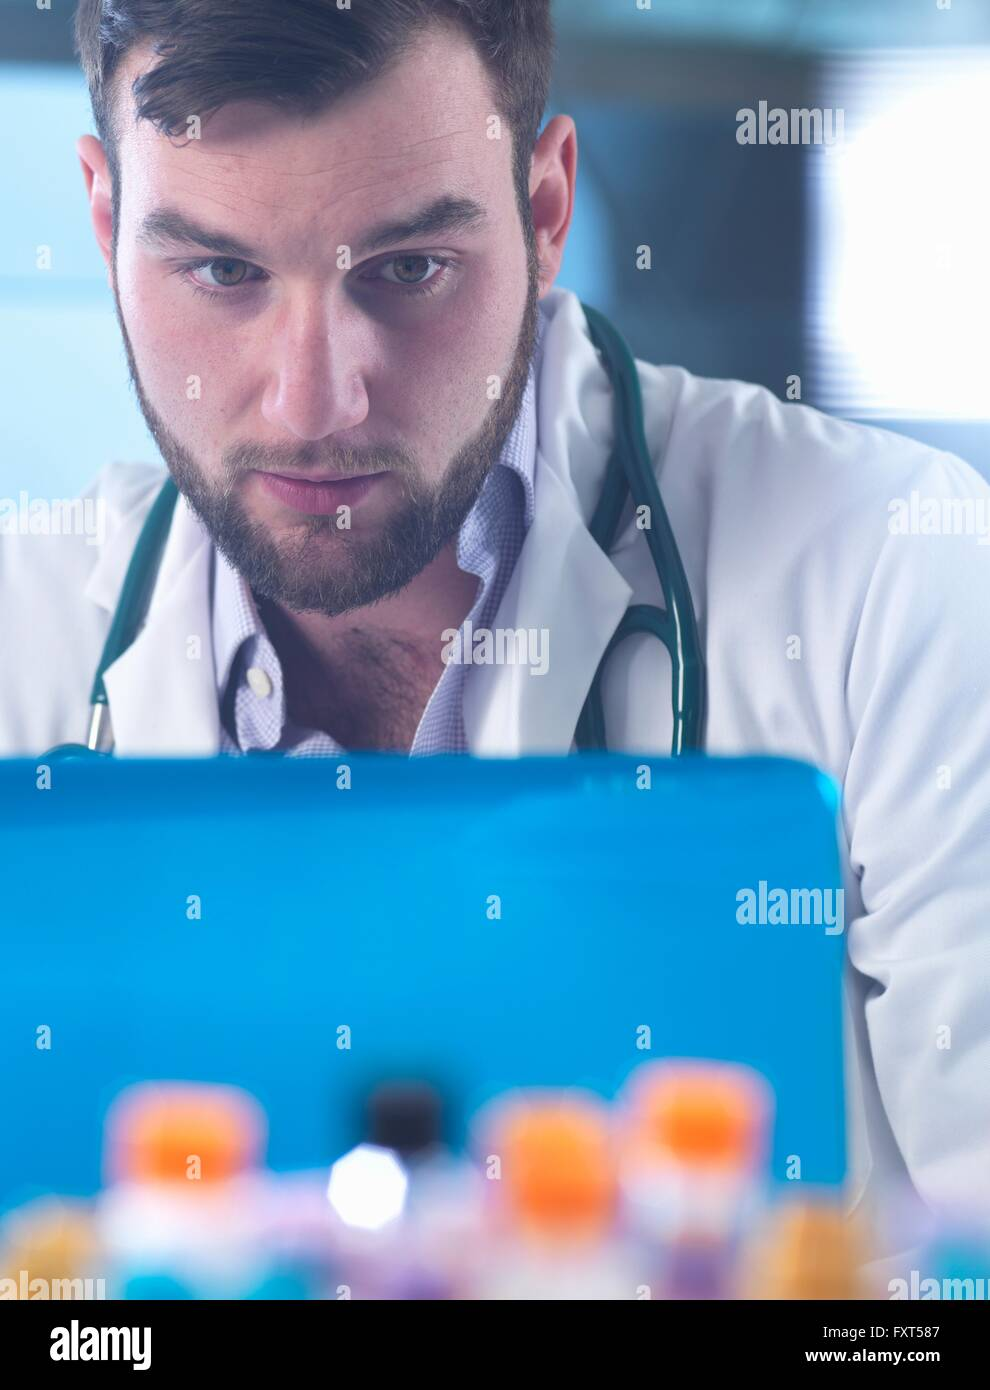 Doctor reading patient medical test results on laptop, samples in foreground - Stock Image